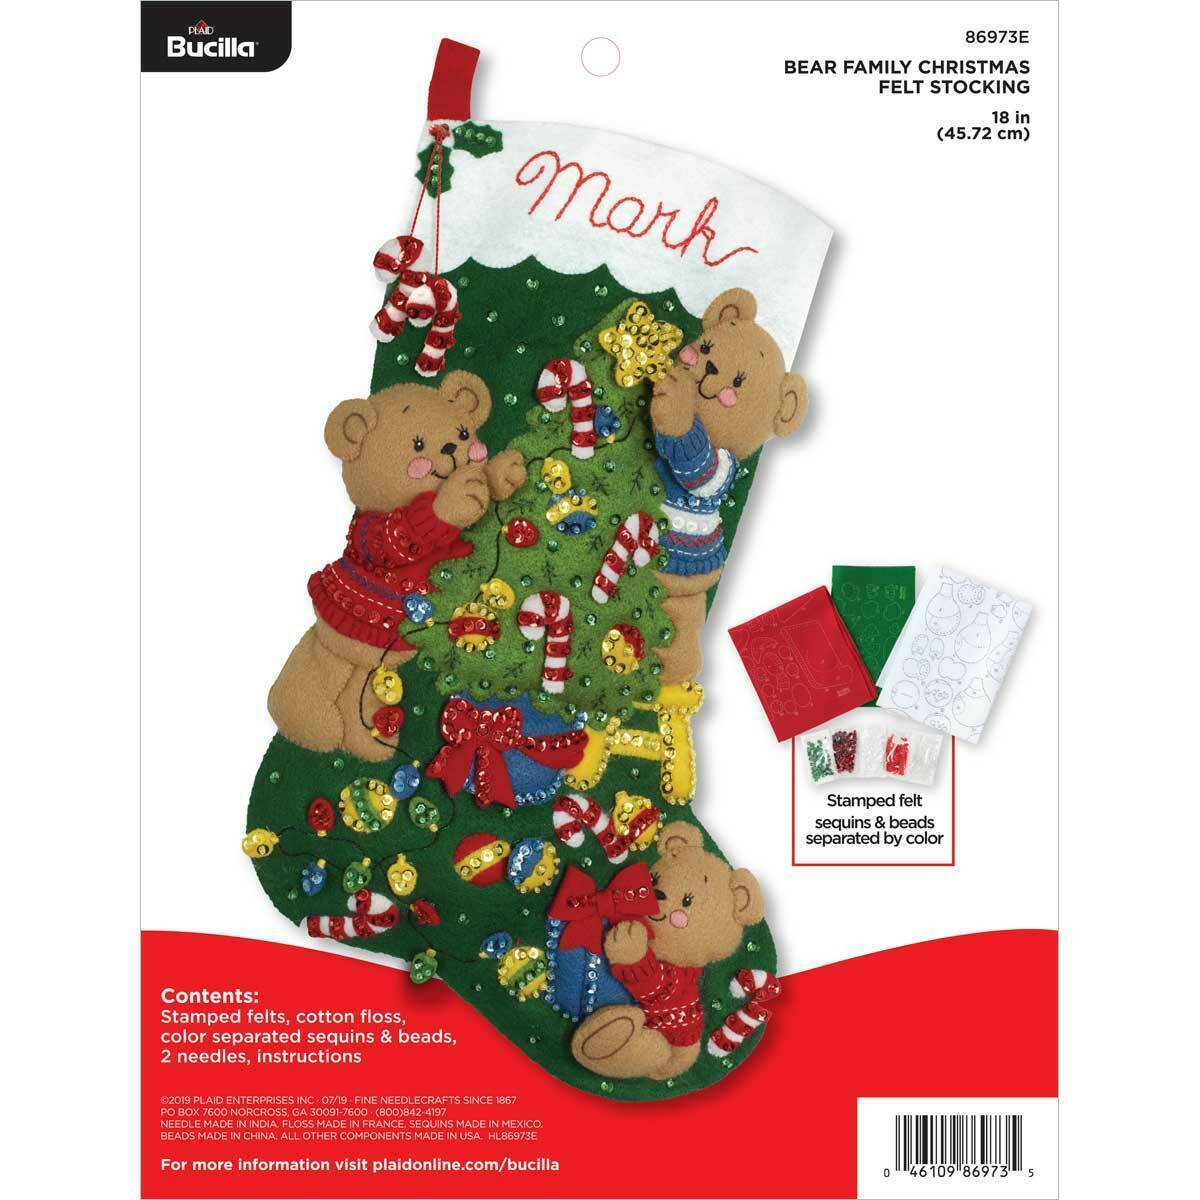 Primary image for Bucilla 'Bear Family Christmas' Felt Stocking Applique Stitchery Kit, 86973E